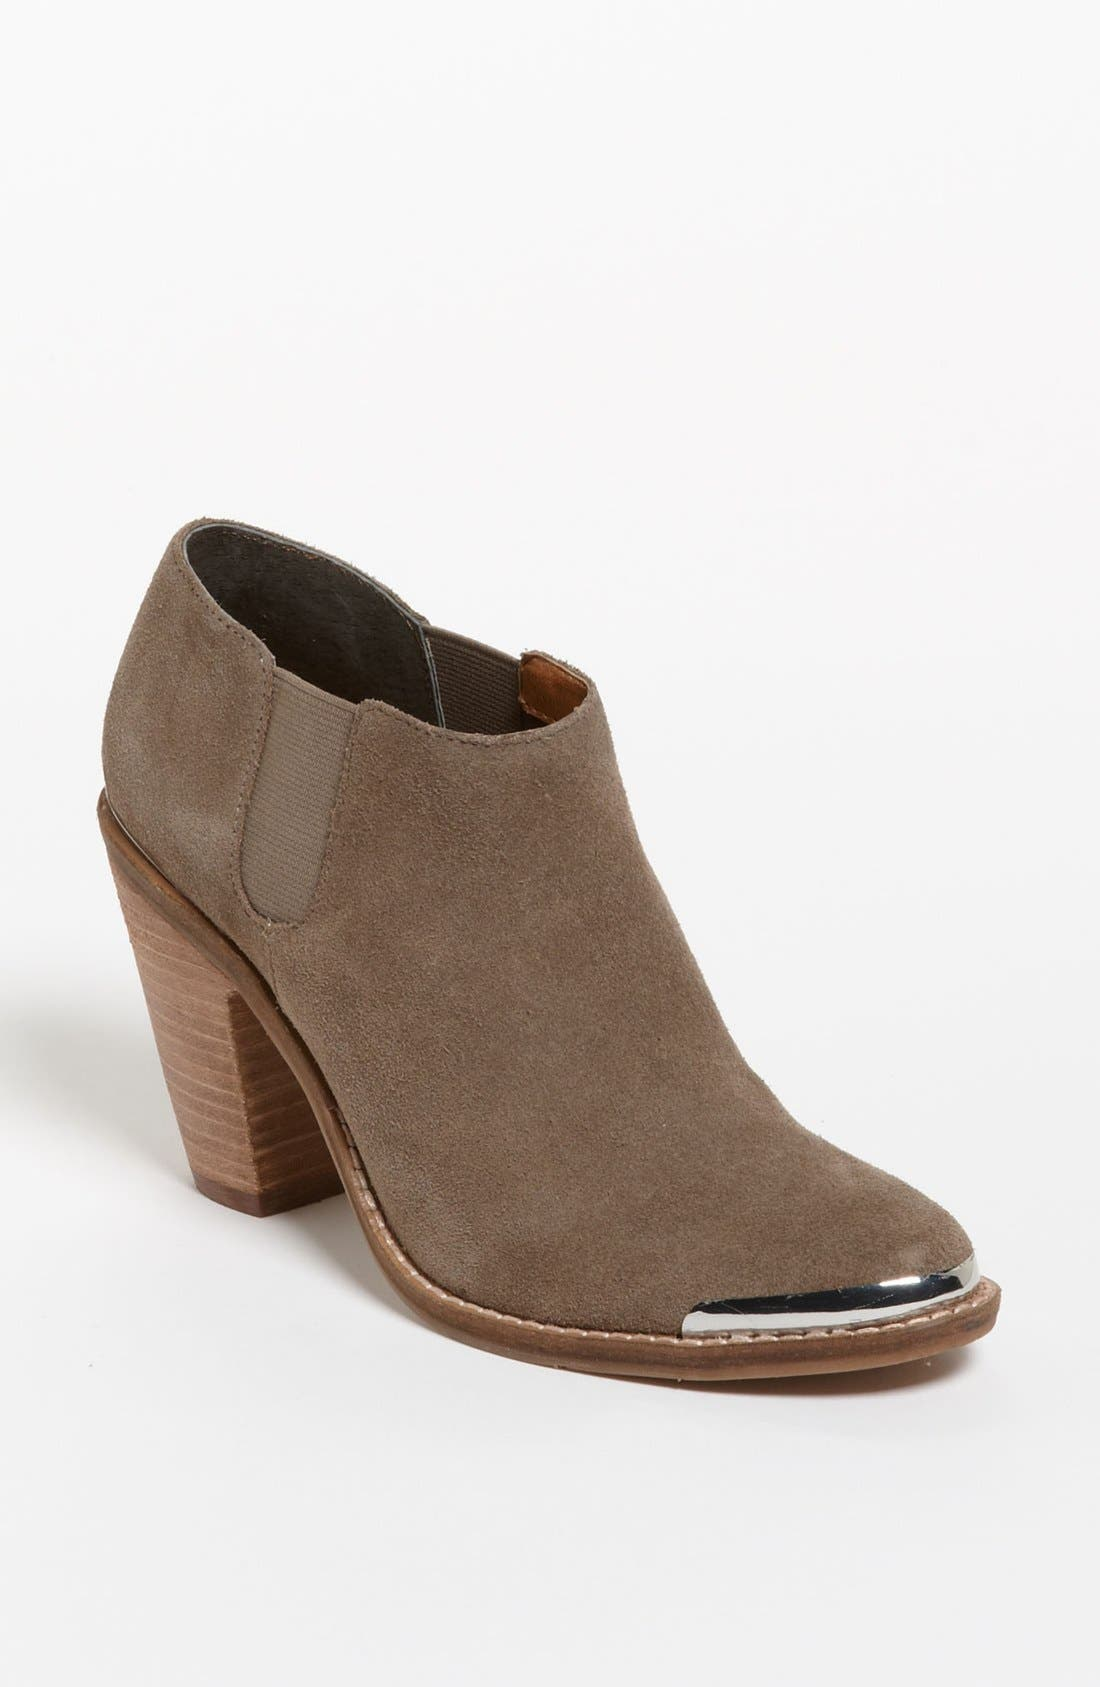 DV by Dolce Vita 'Carlin' Bootie,                         Main,                         color, Taupe Suede